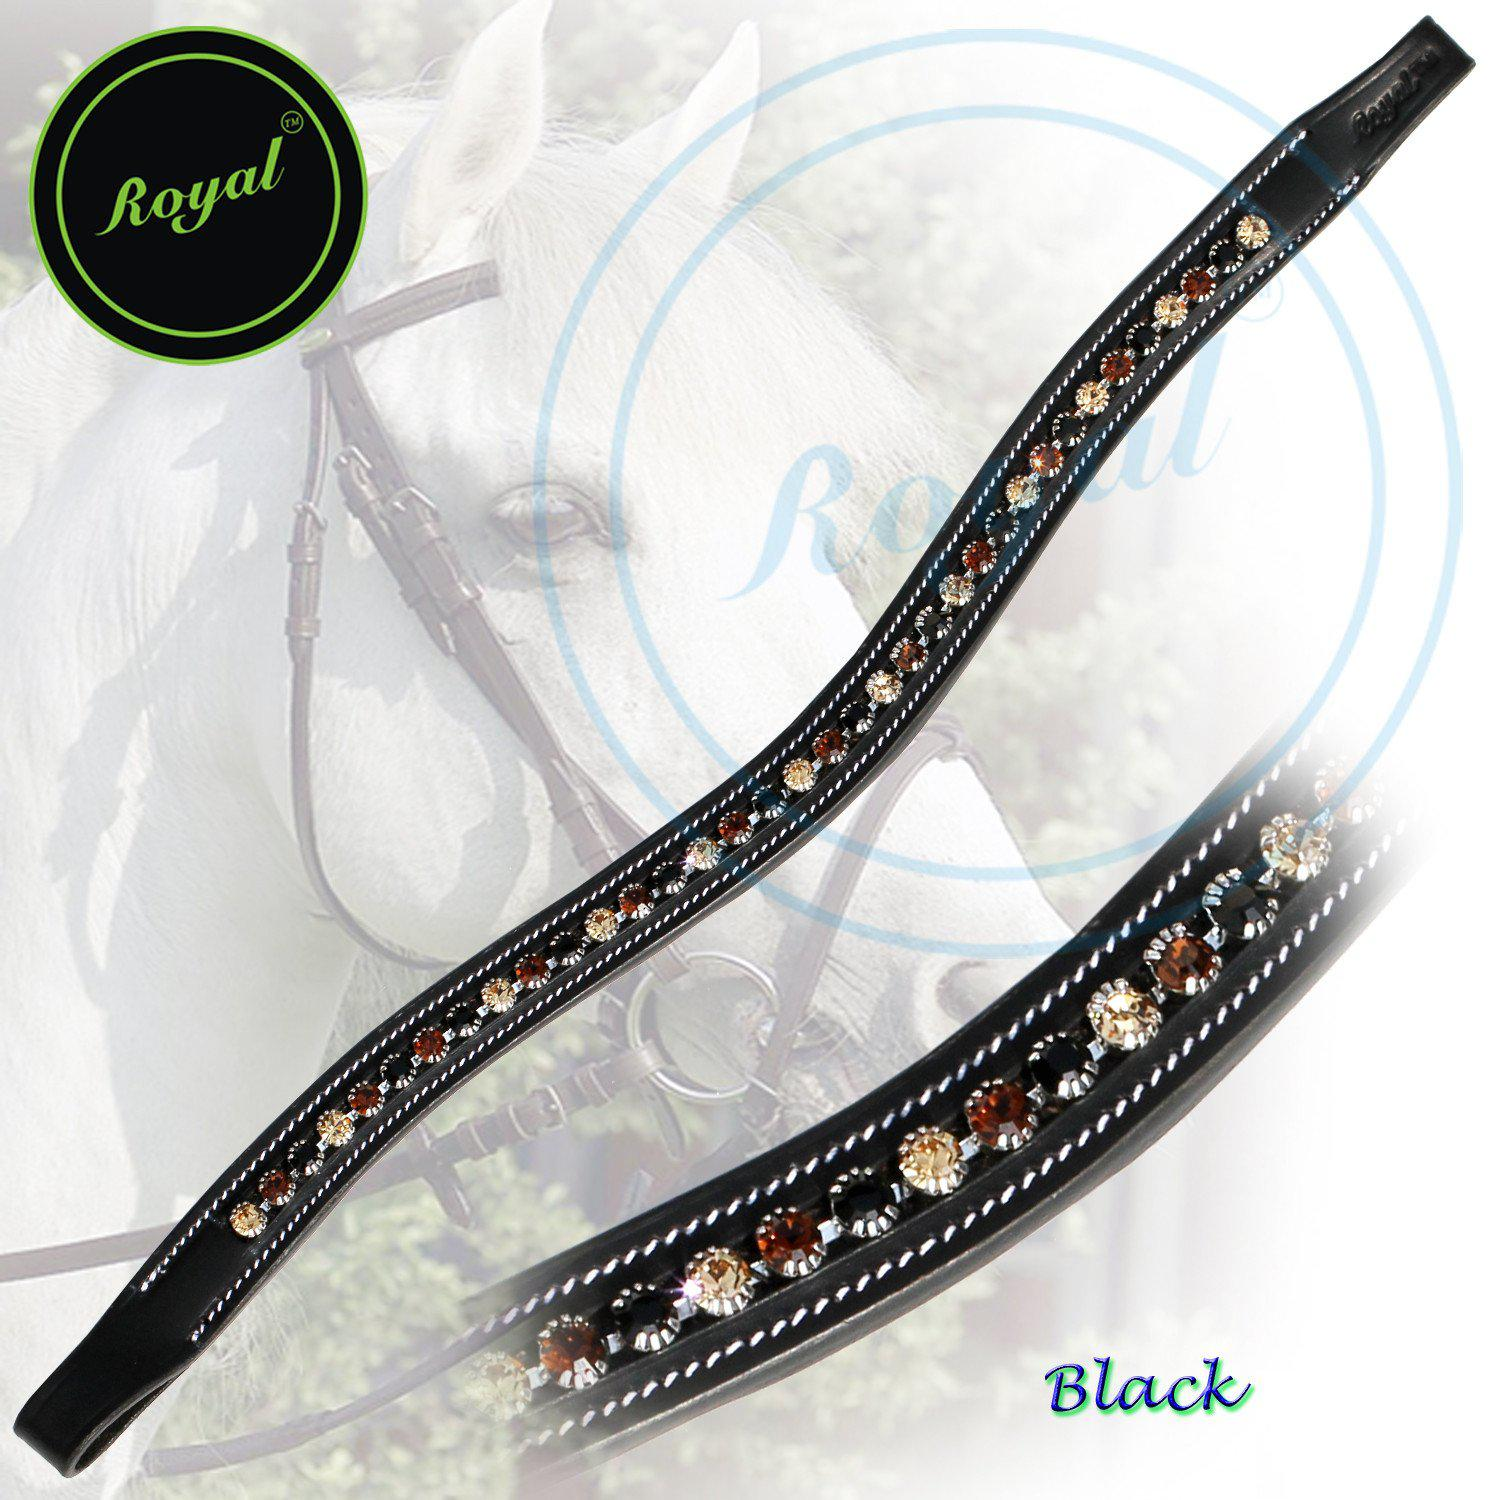 ExionPro Dual Colored Glittering Brown, Black and Golden Crystal Browband-Bridles & Reins